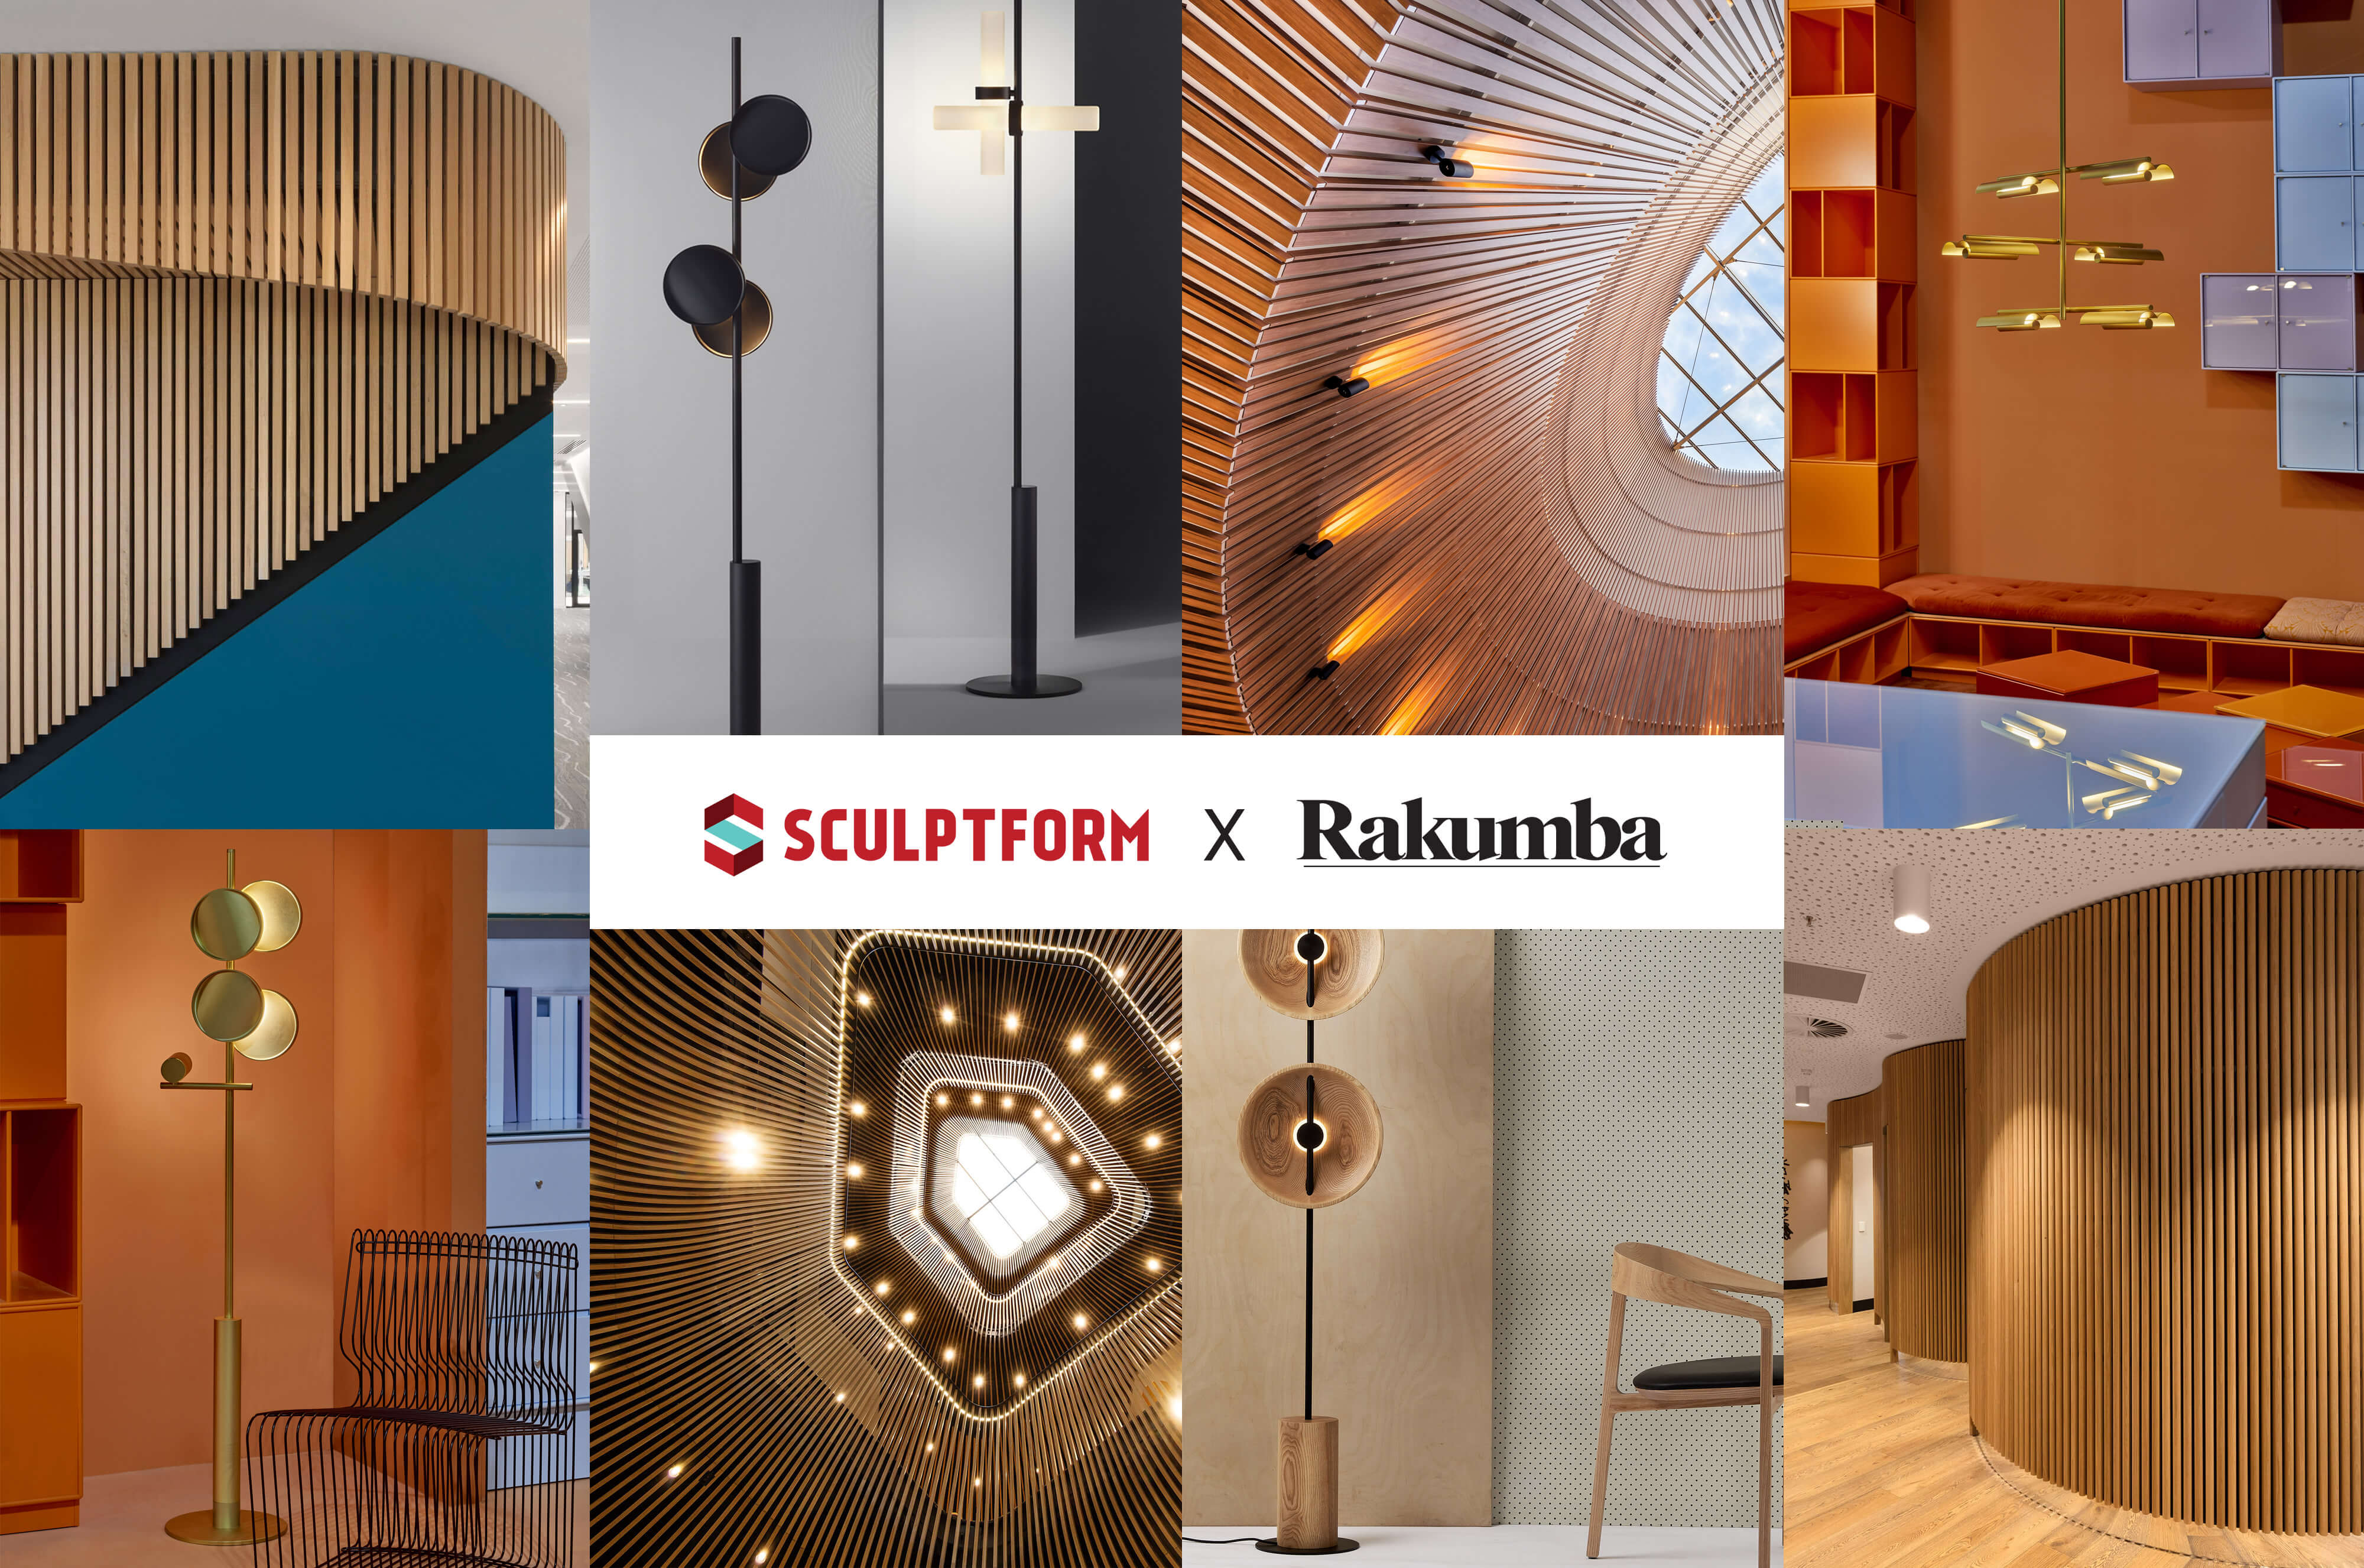 Sculptform and Rakumba collaboration